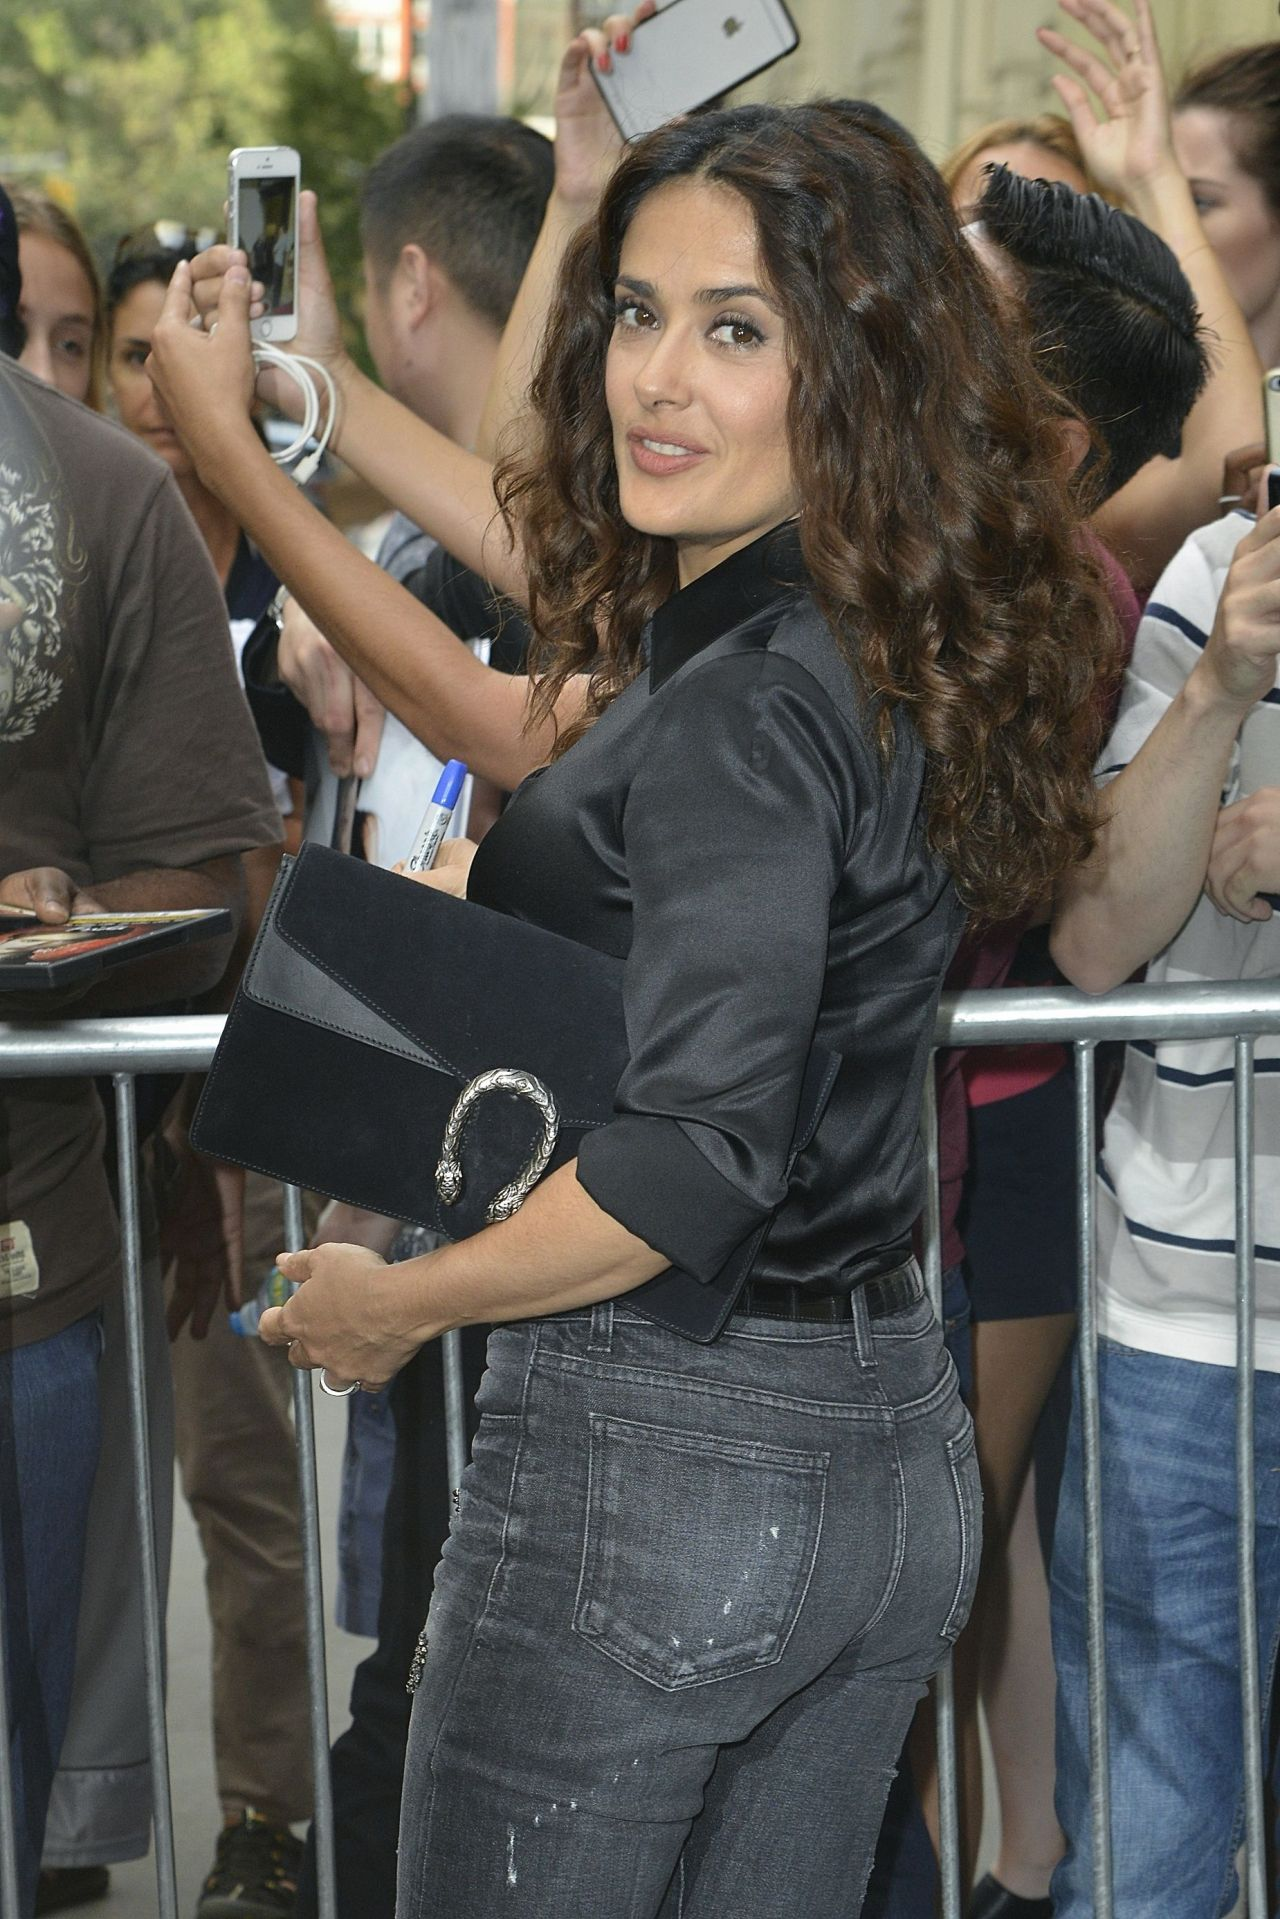 Salma Hayek Booty In Jeans At The Apple Store In Ny